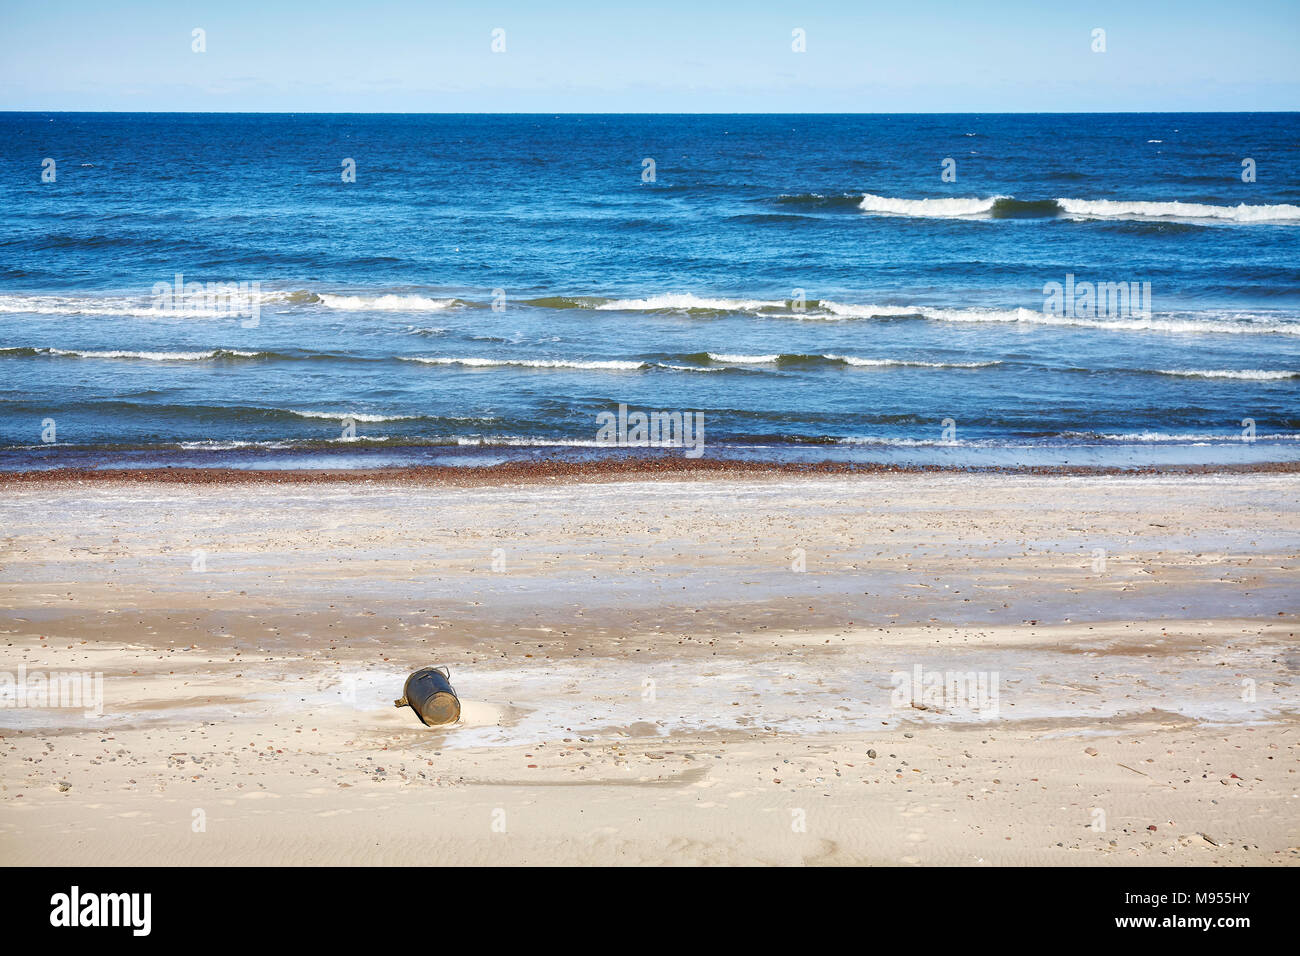 Empty beach with discarded trash can, environmental pollution concept picture. - Stock Image